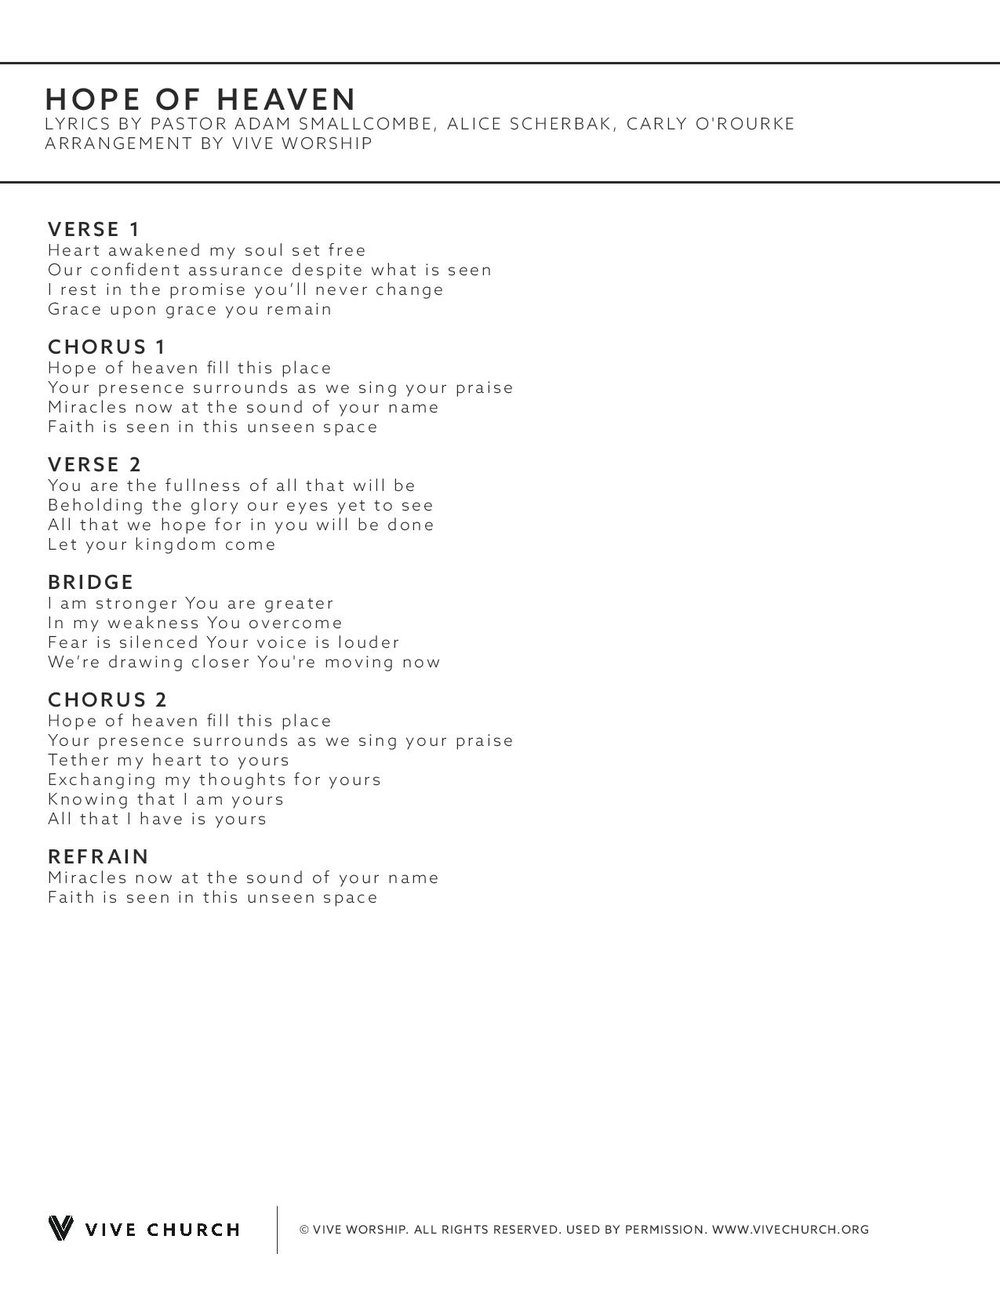 Hope_Of_Heaven_Lyrics-page-001.jpg